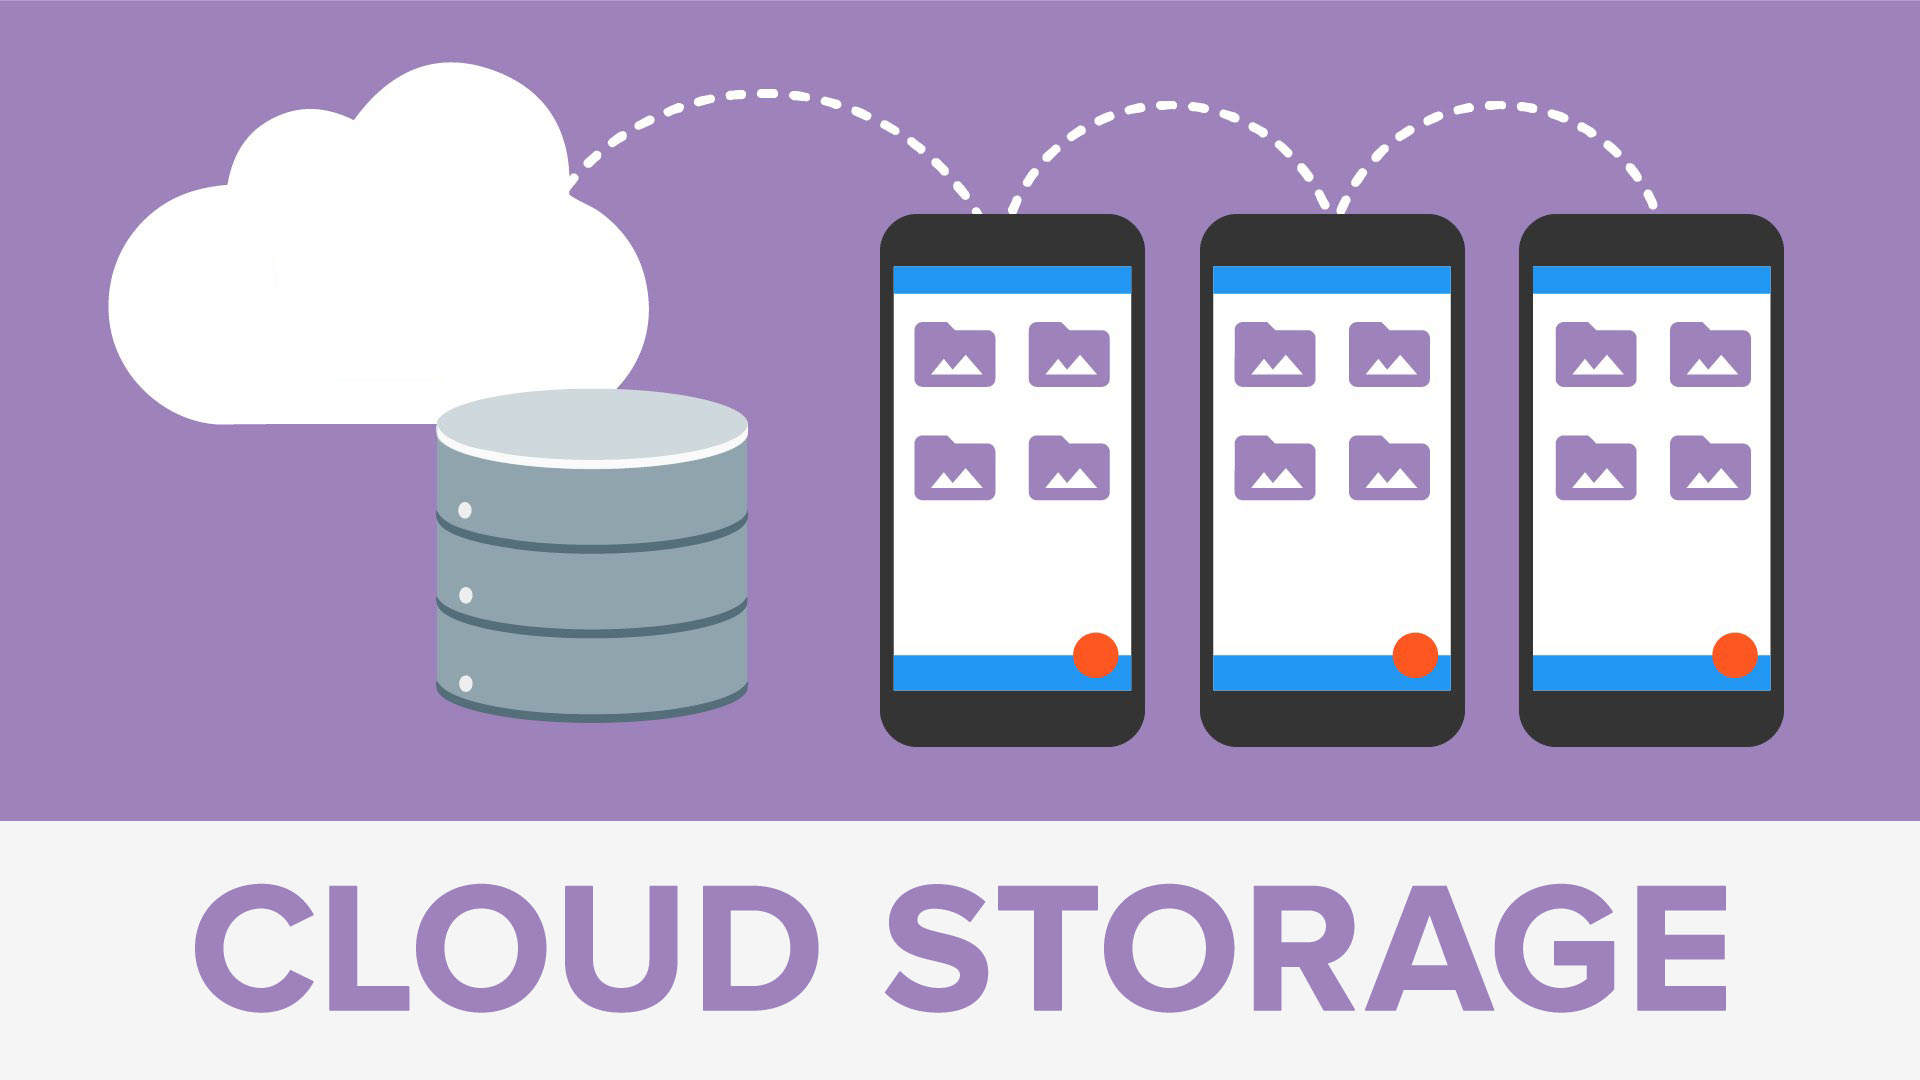 what is cloud storage Cloud storage is easy to come by dozens of services shovel tons of free space to you just for signing up but which of those services are looking at the files you upload, and most importantly, which services encrypt your personal data so no one can look at it.